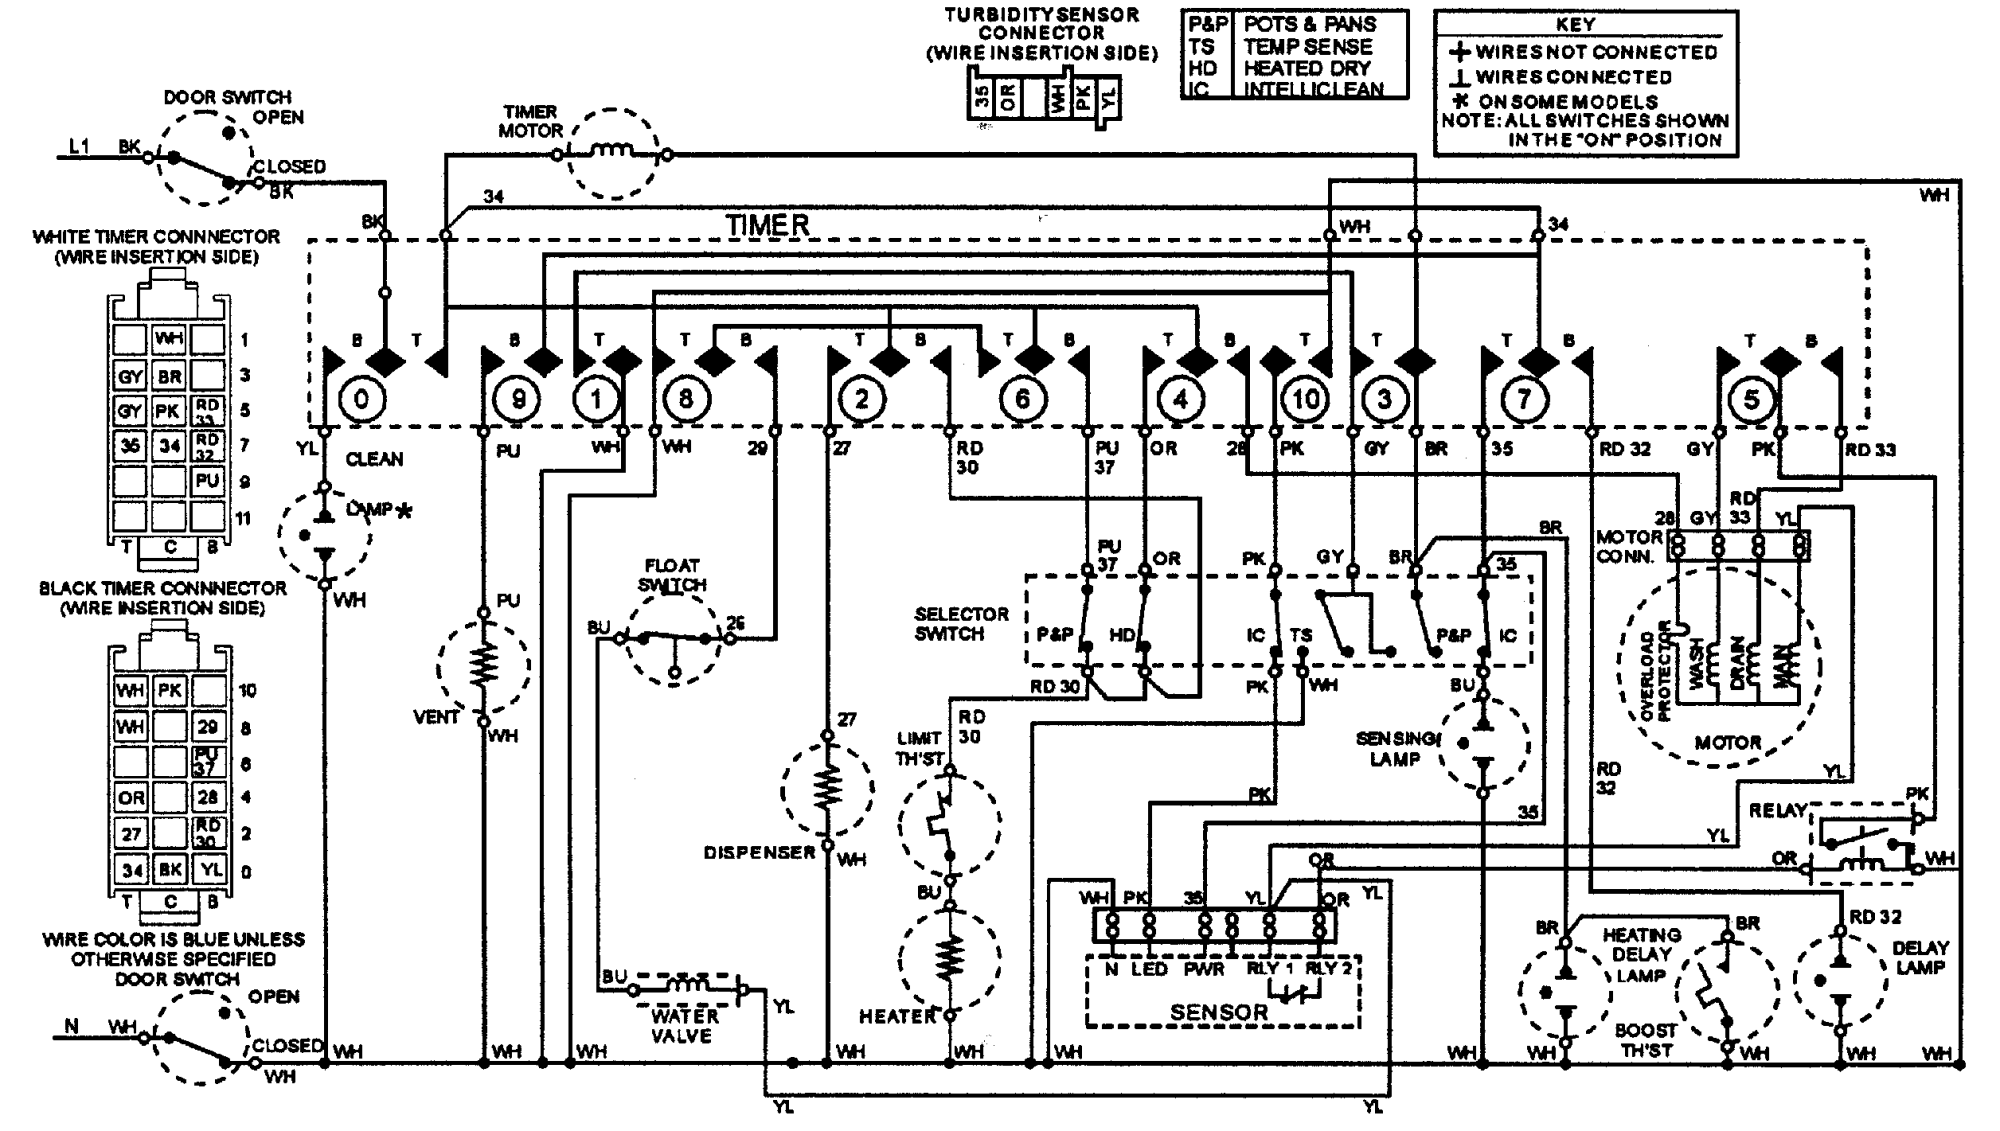 hight resolution of wiring schematic for whirlpool washing machine wiring diagram paper ultra wash dishwasher moreover whirlpool washer lid switch diagram